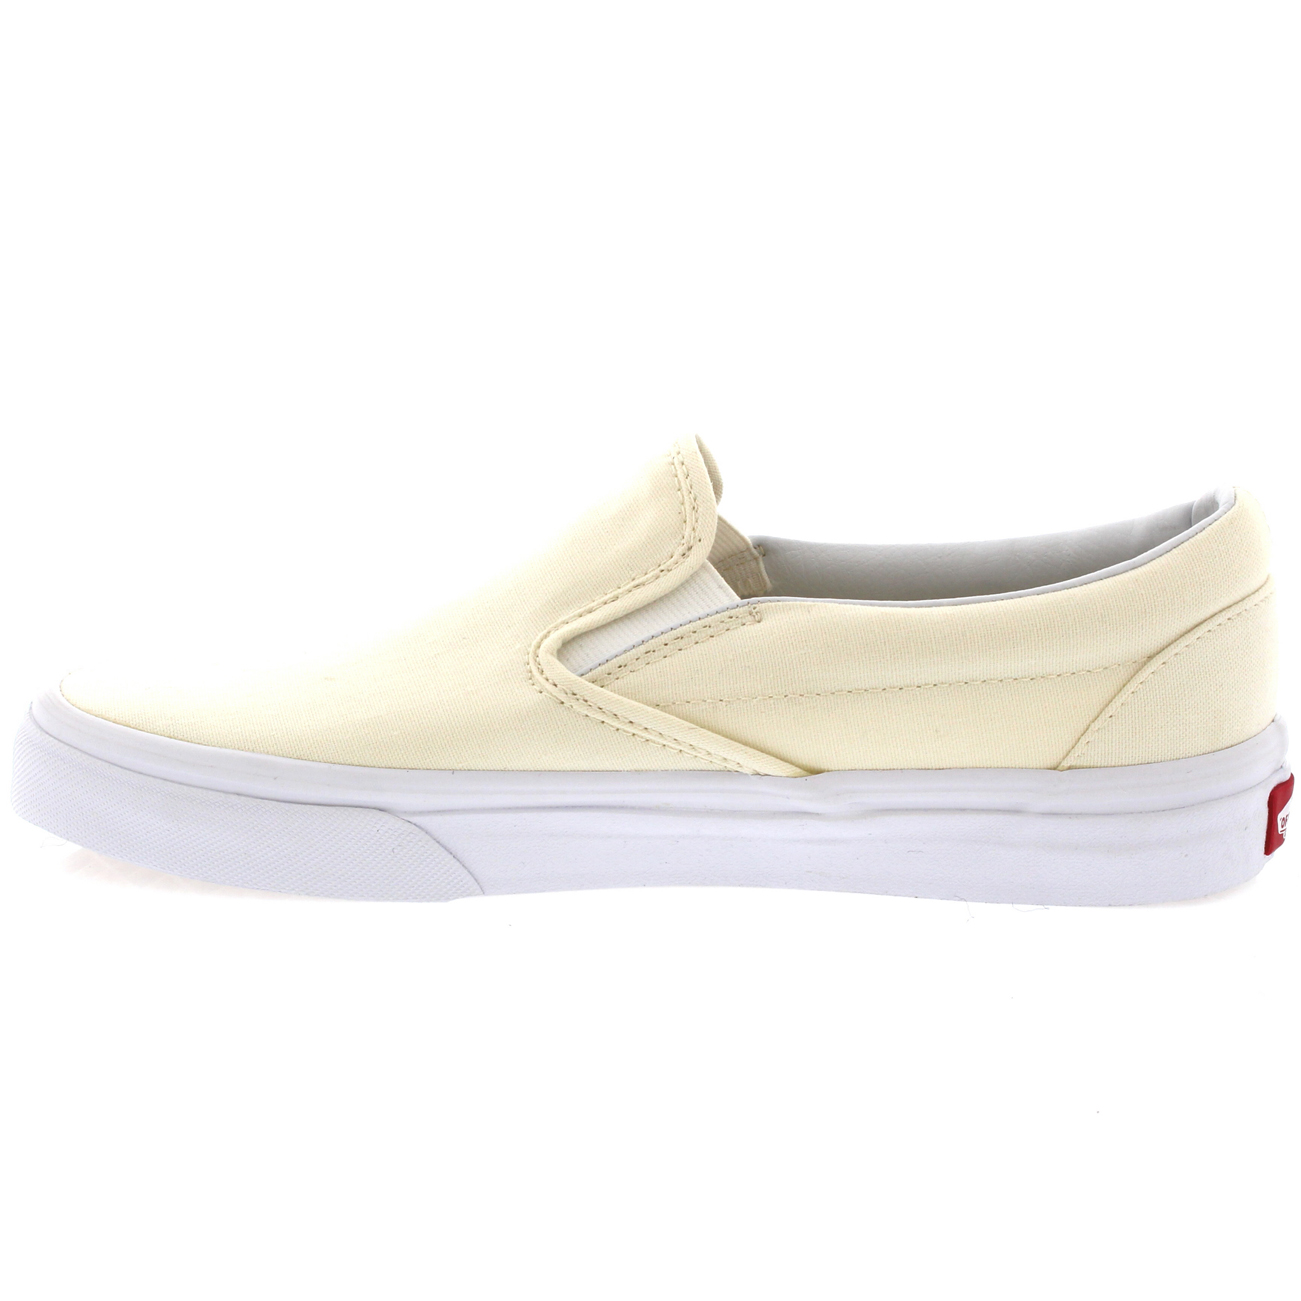 Converse Classic Plimsolls Casual Shoes